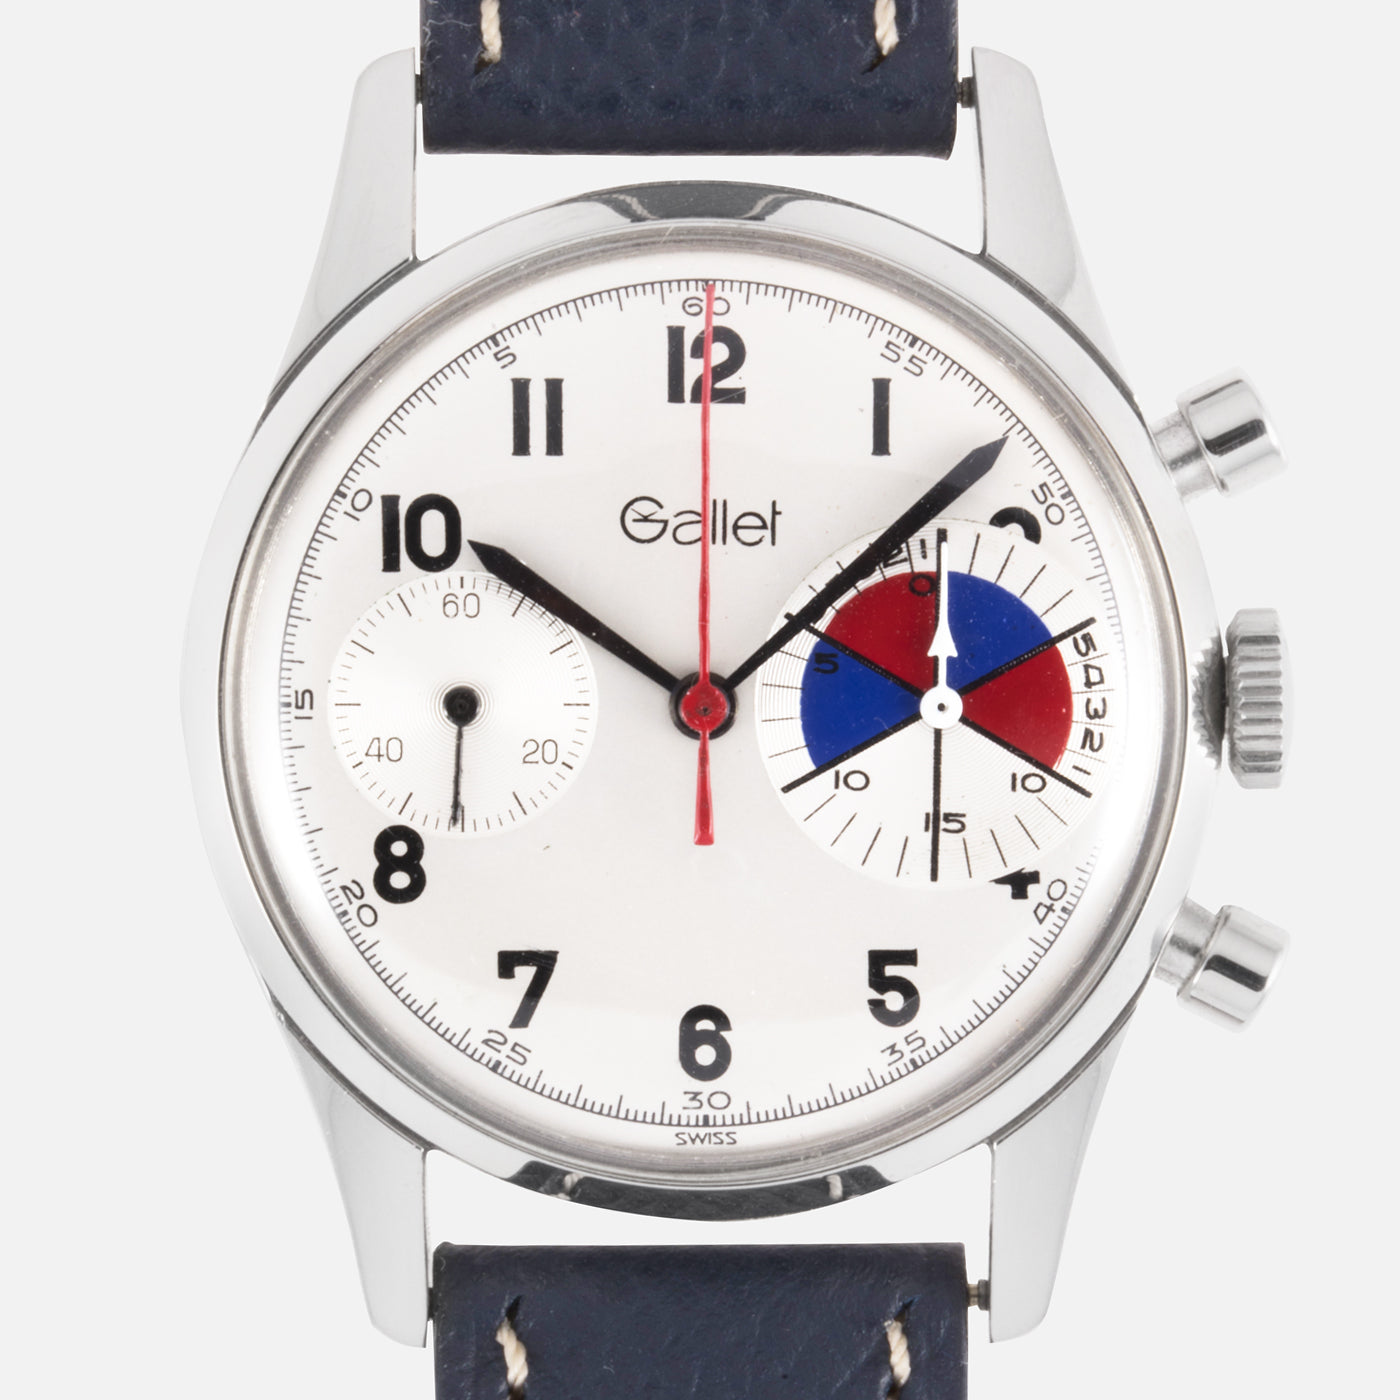 Gallet Multichron Yachting